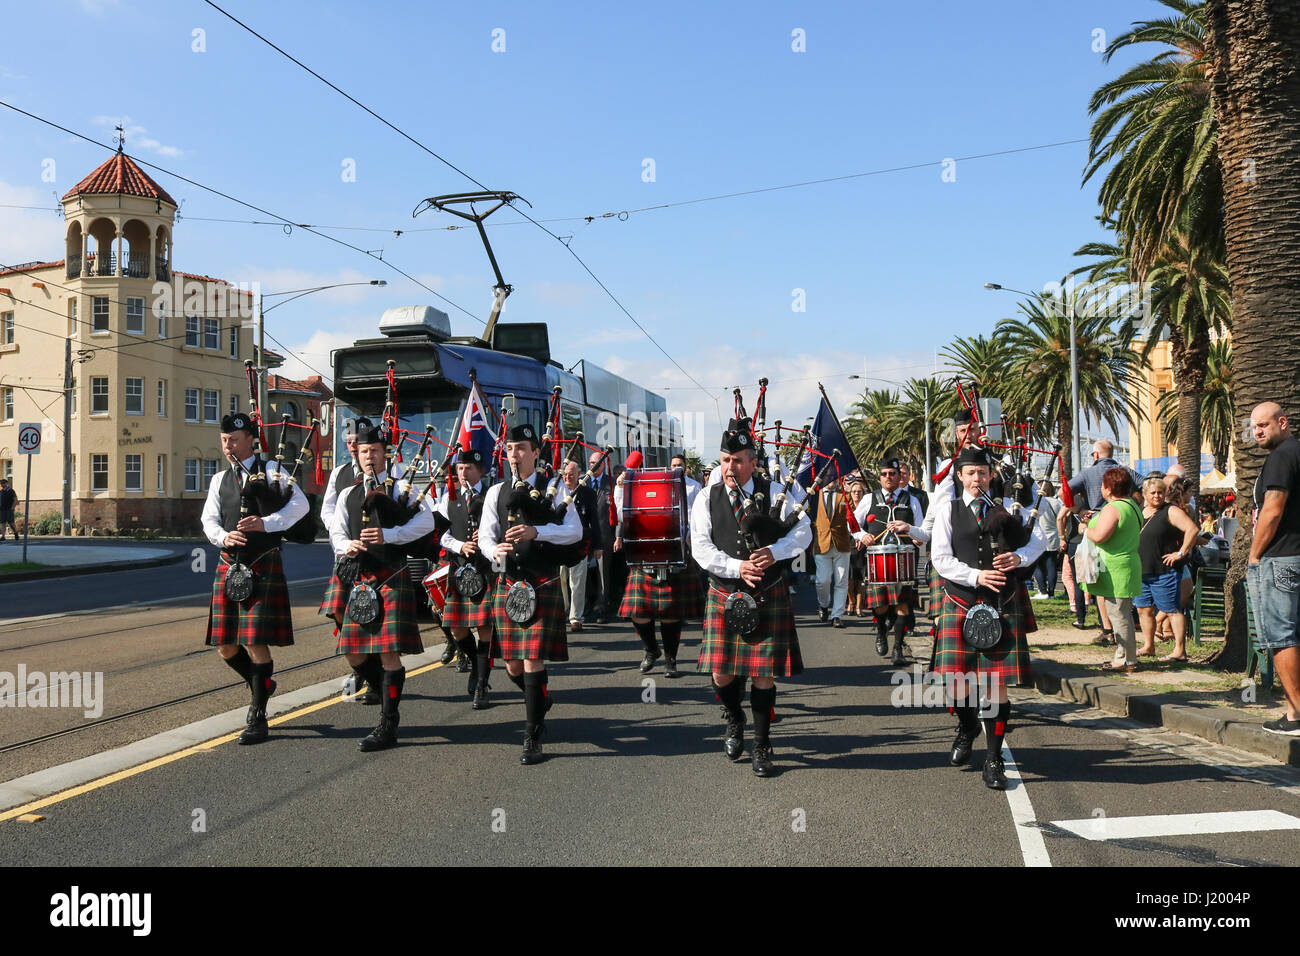 Melbourne Australia. 23rd April 2017. With 2 days until  Anzac Day, Members of the Melbourne Highland Pipe band - Stock Image